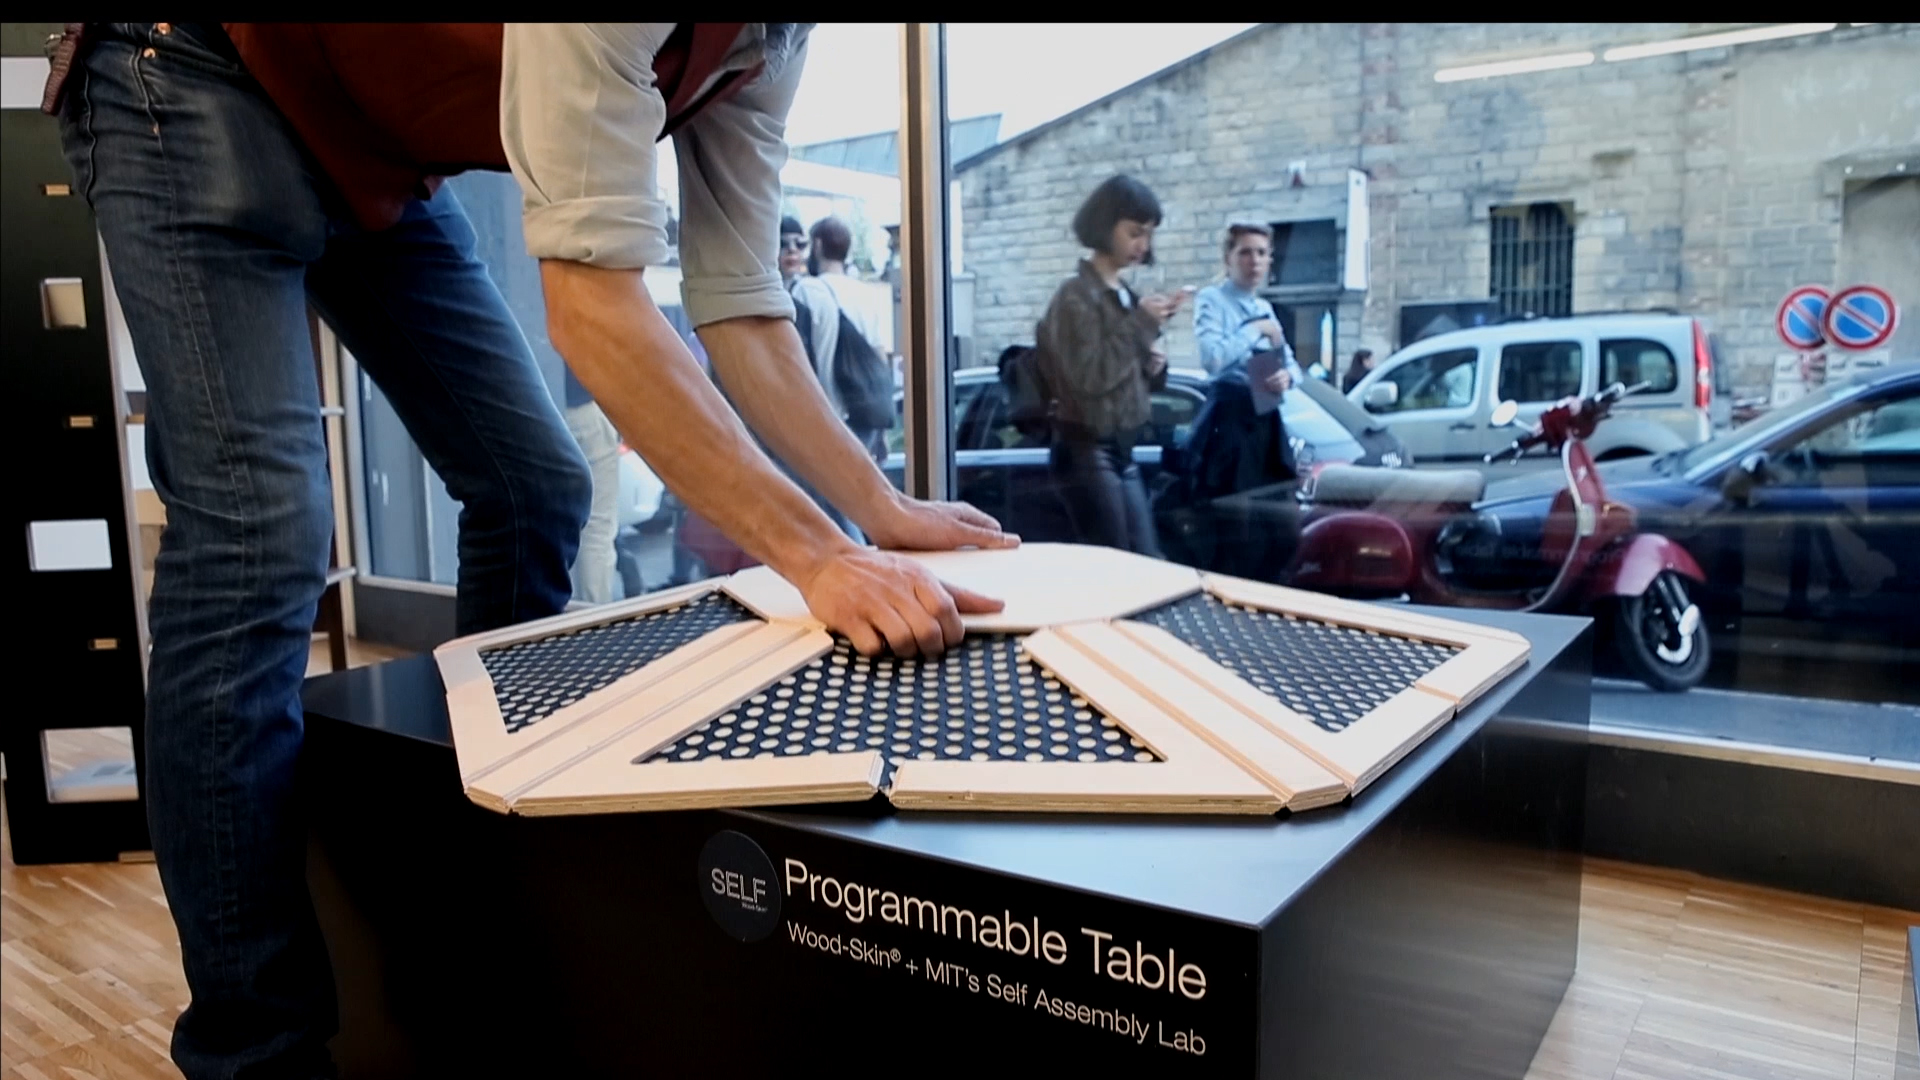 Programmable Table